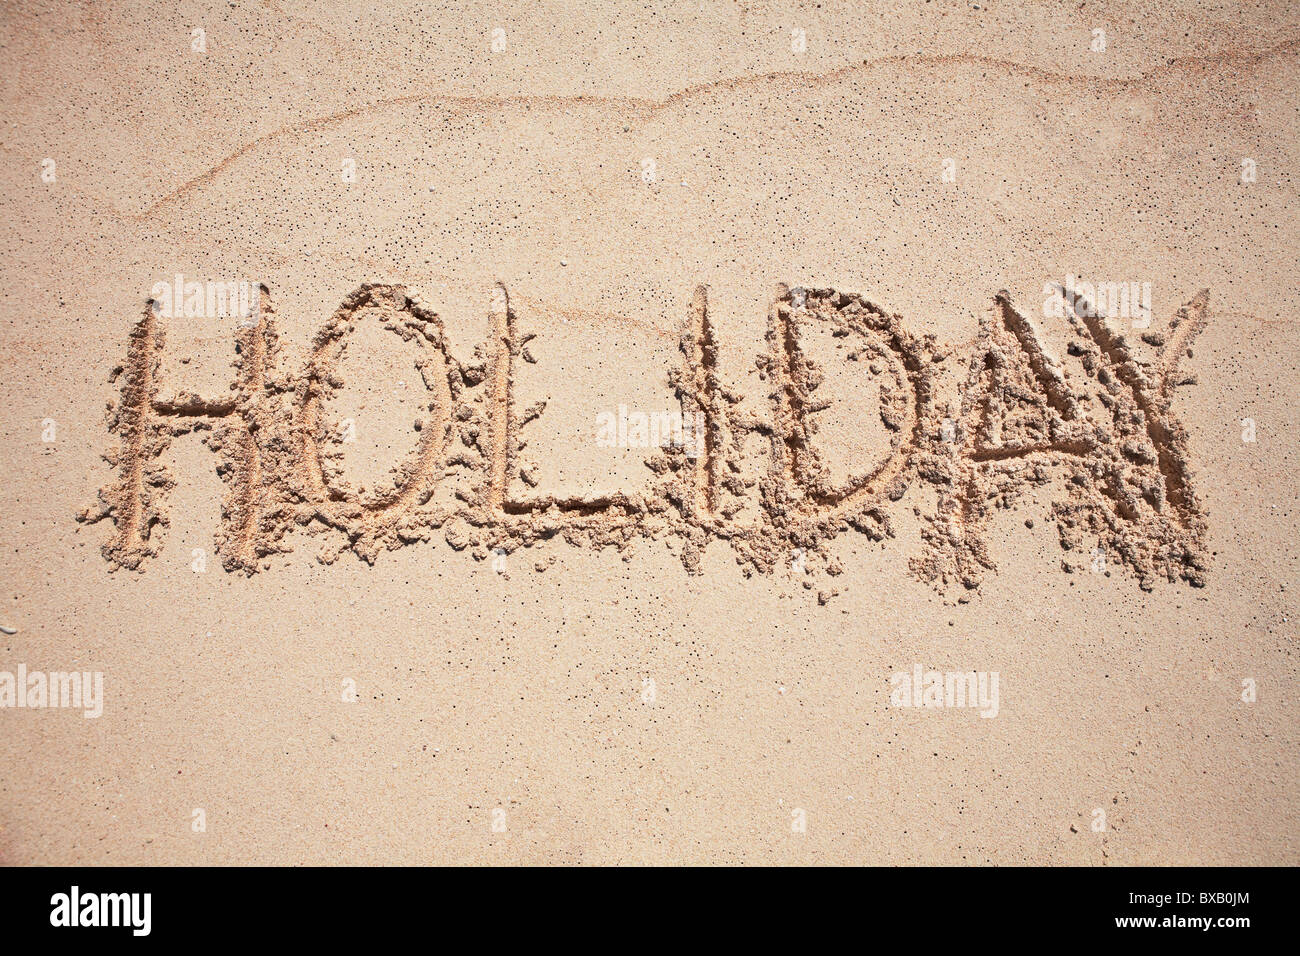 Text  HOLIDAY written on sand - Stock Image